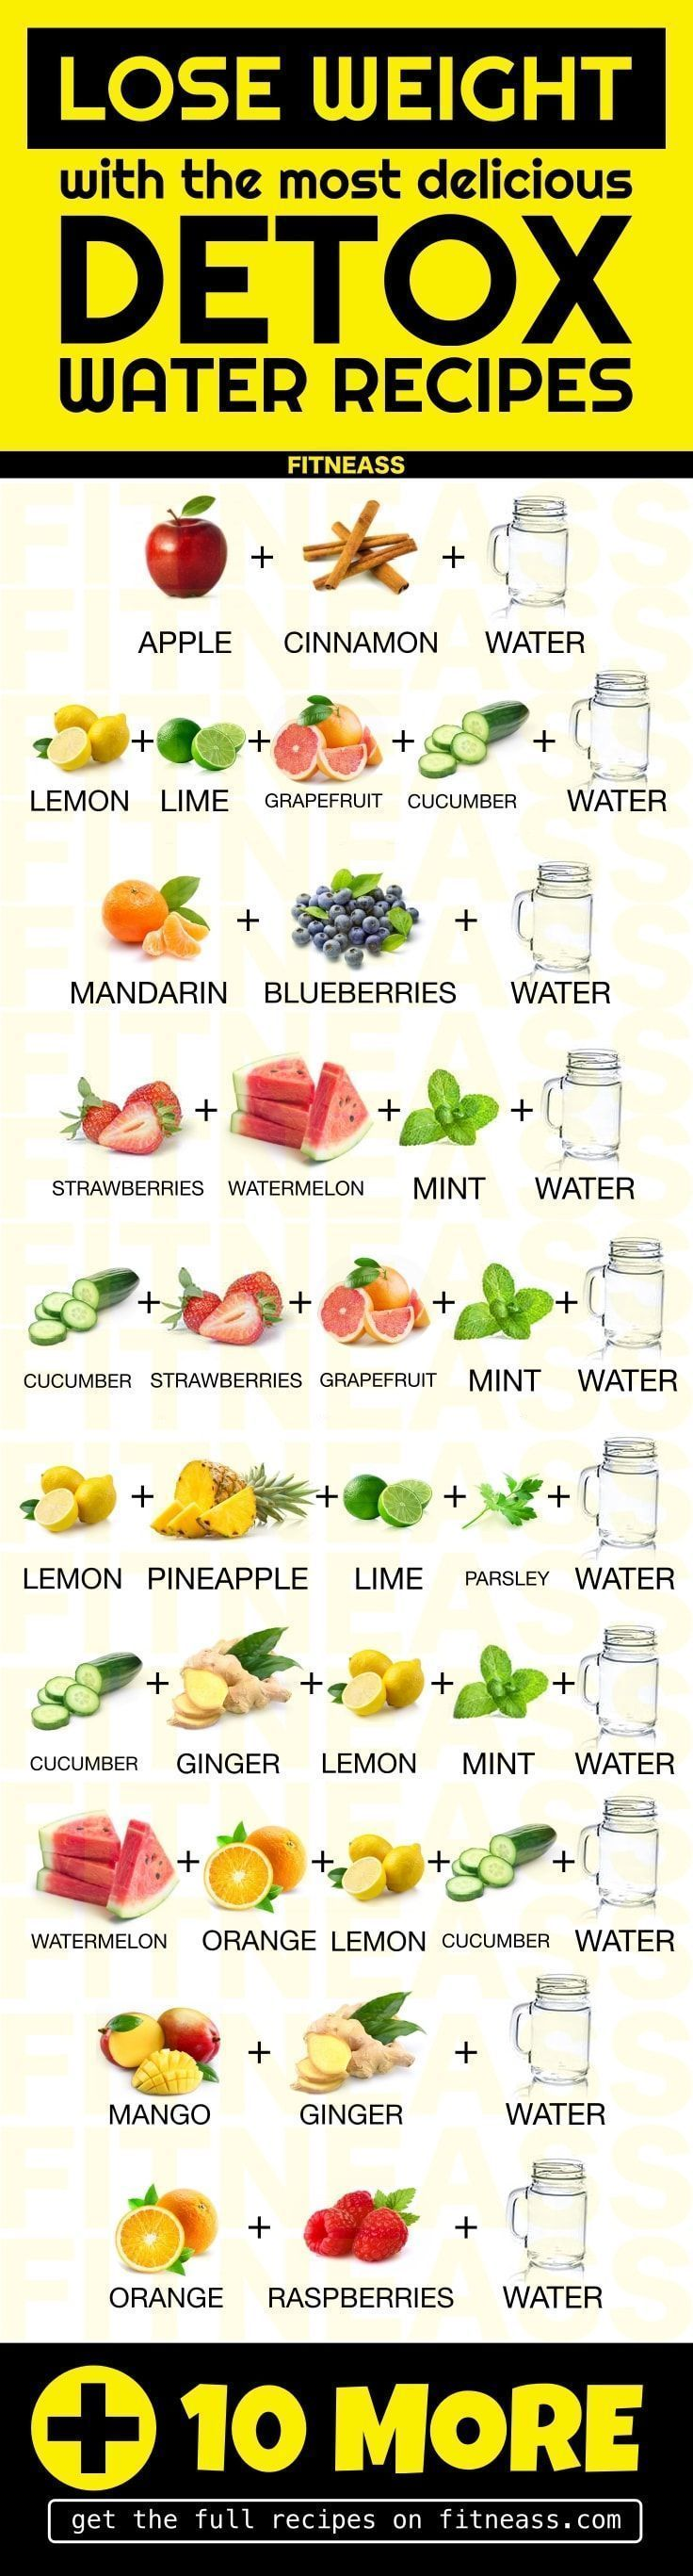 20 Detox Water Recipes To Lose Weight And Flush Out Toxins #dietplansforwomen #CleanseAndDetoxDiet